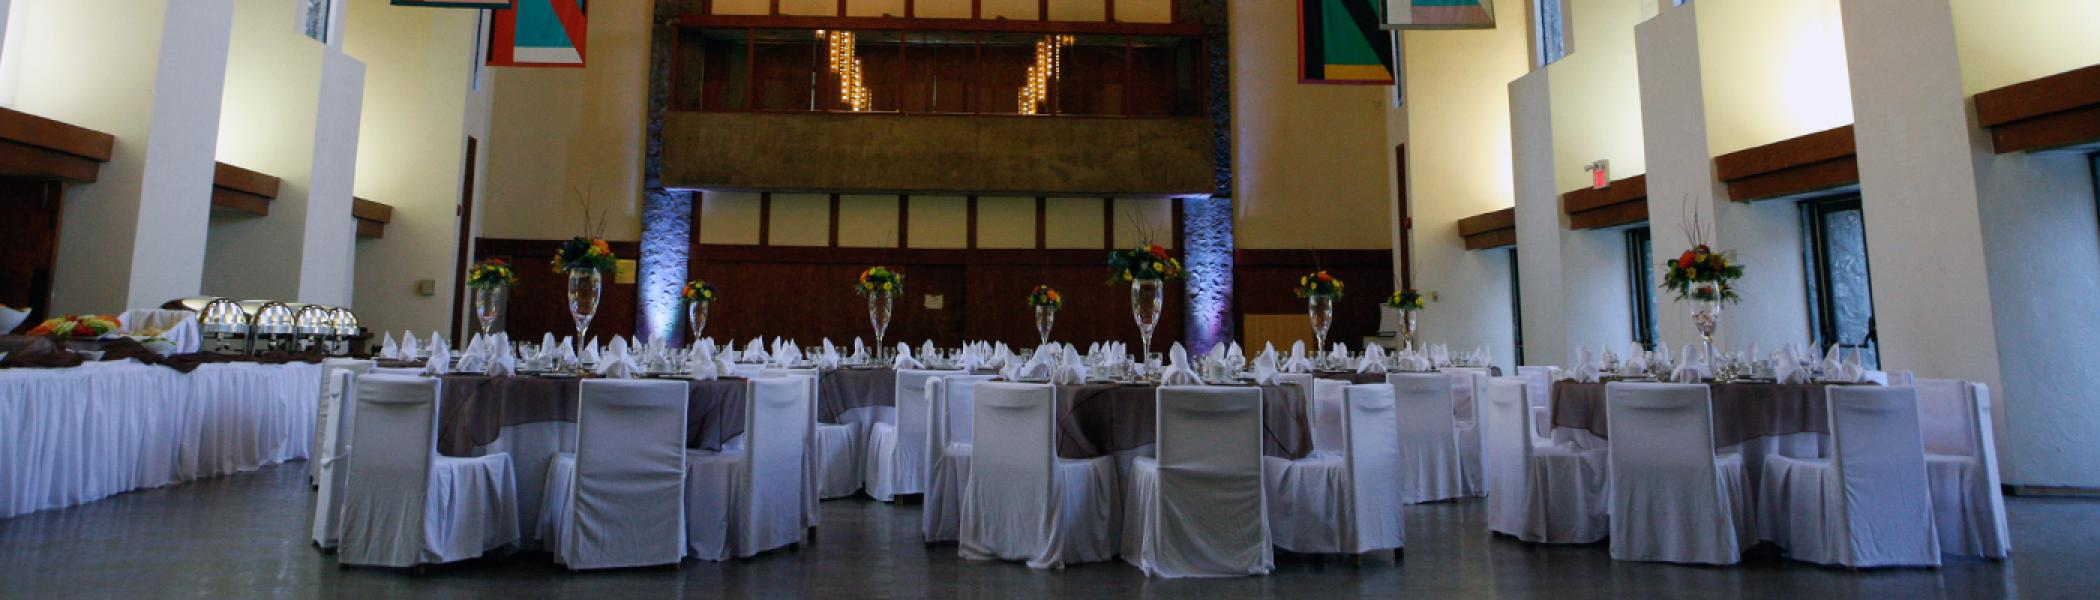 Tables set up for a wedding in the Great Hall